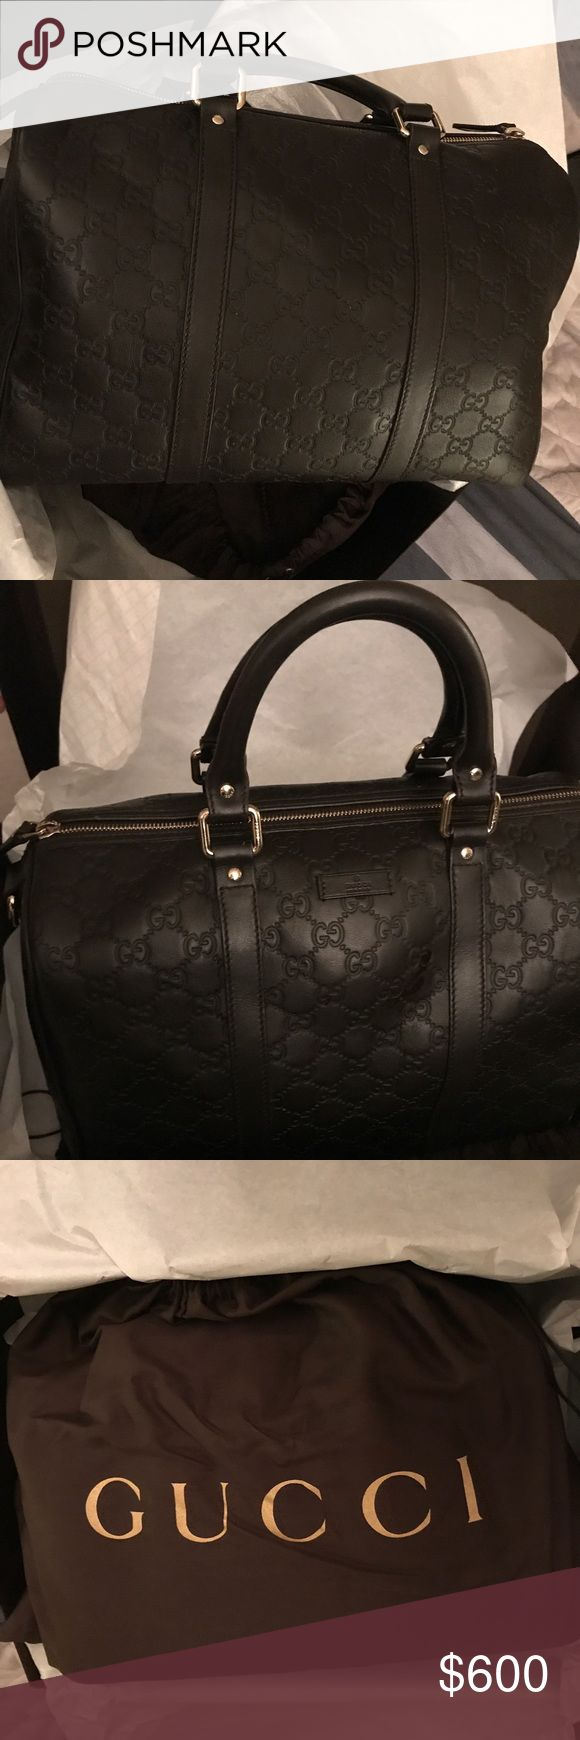 Gucci purse Gucci purse lightly used. Does have a scratch at the bottom. Has original Gucci shopping bag, also has dust bag and box it came in. Gucci Bags Totes